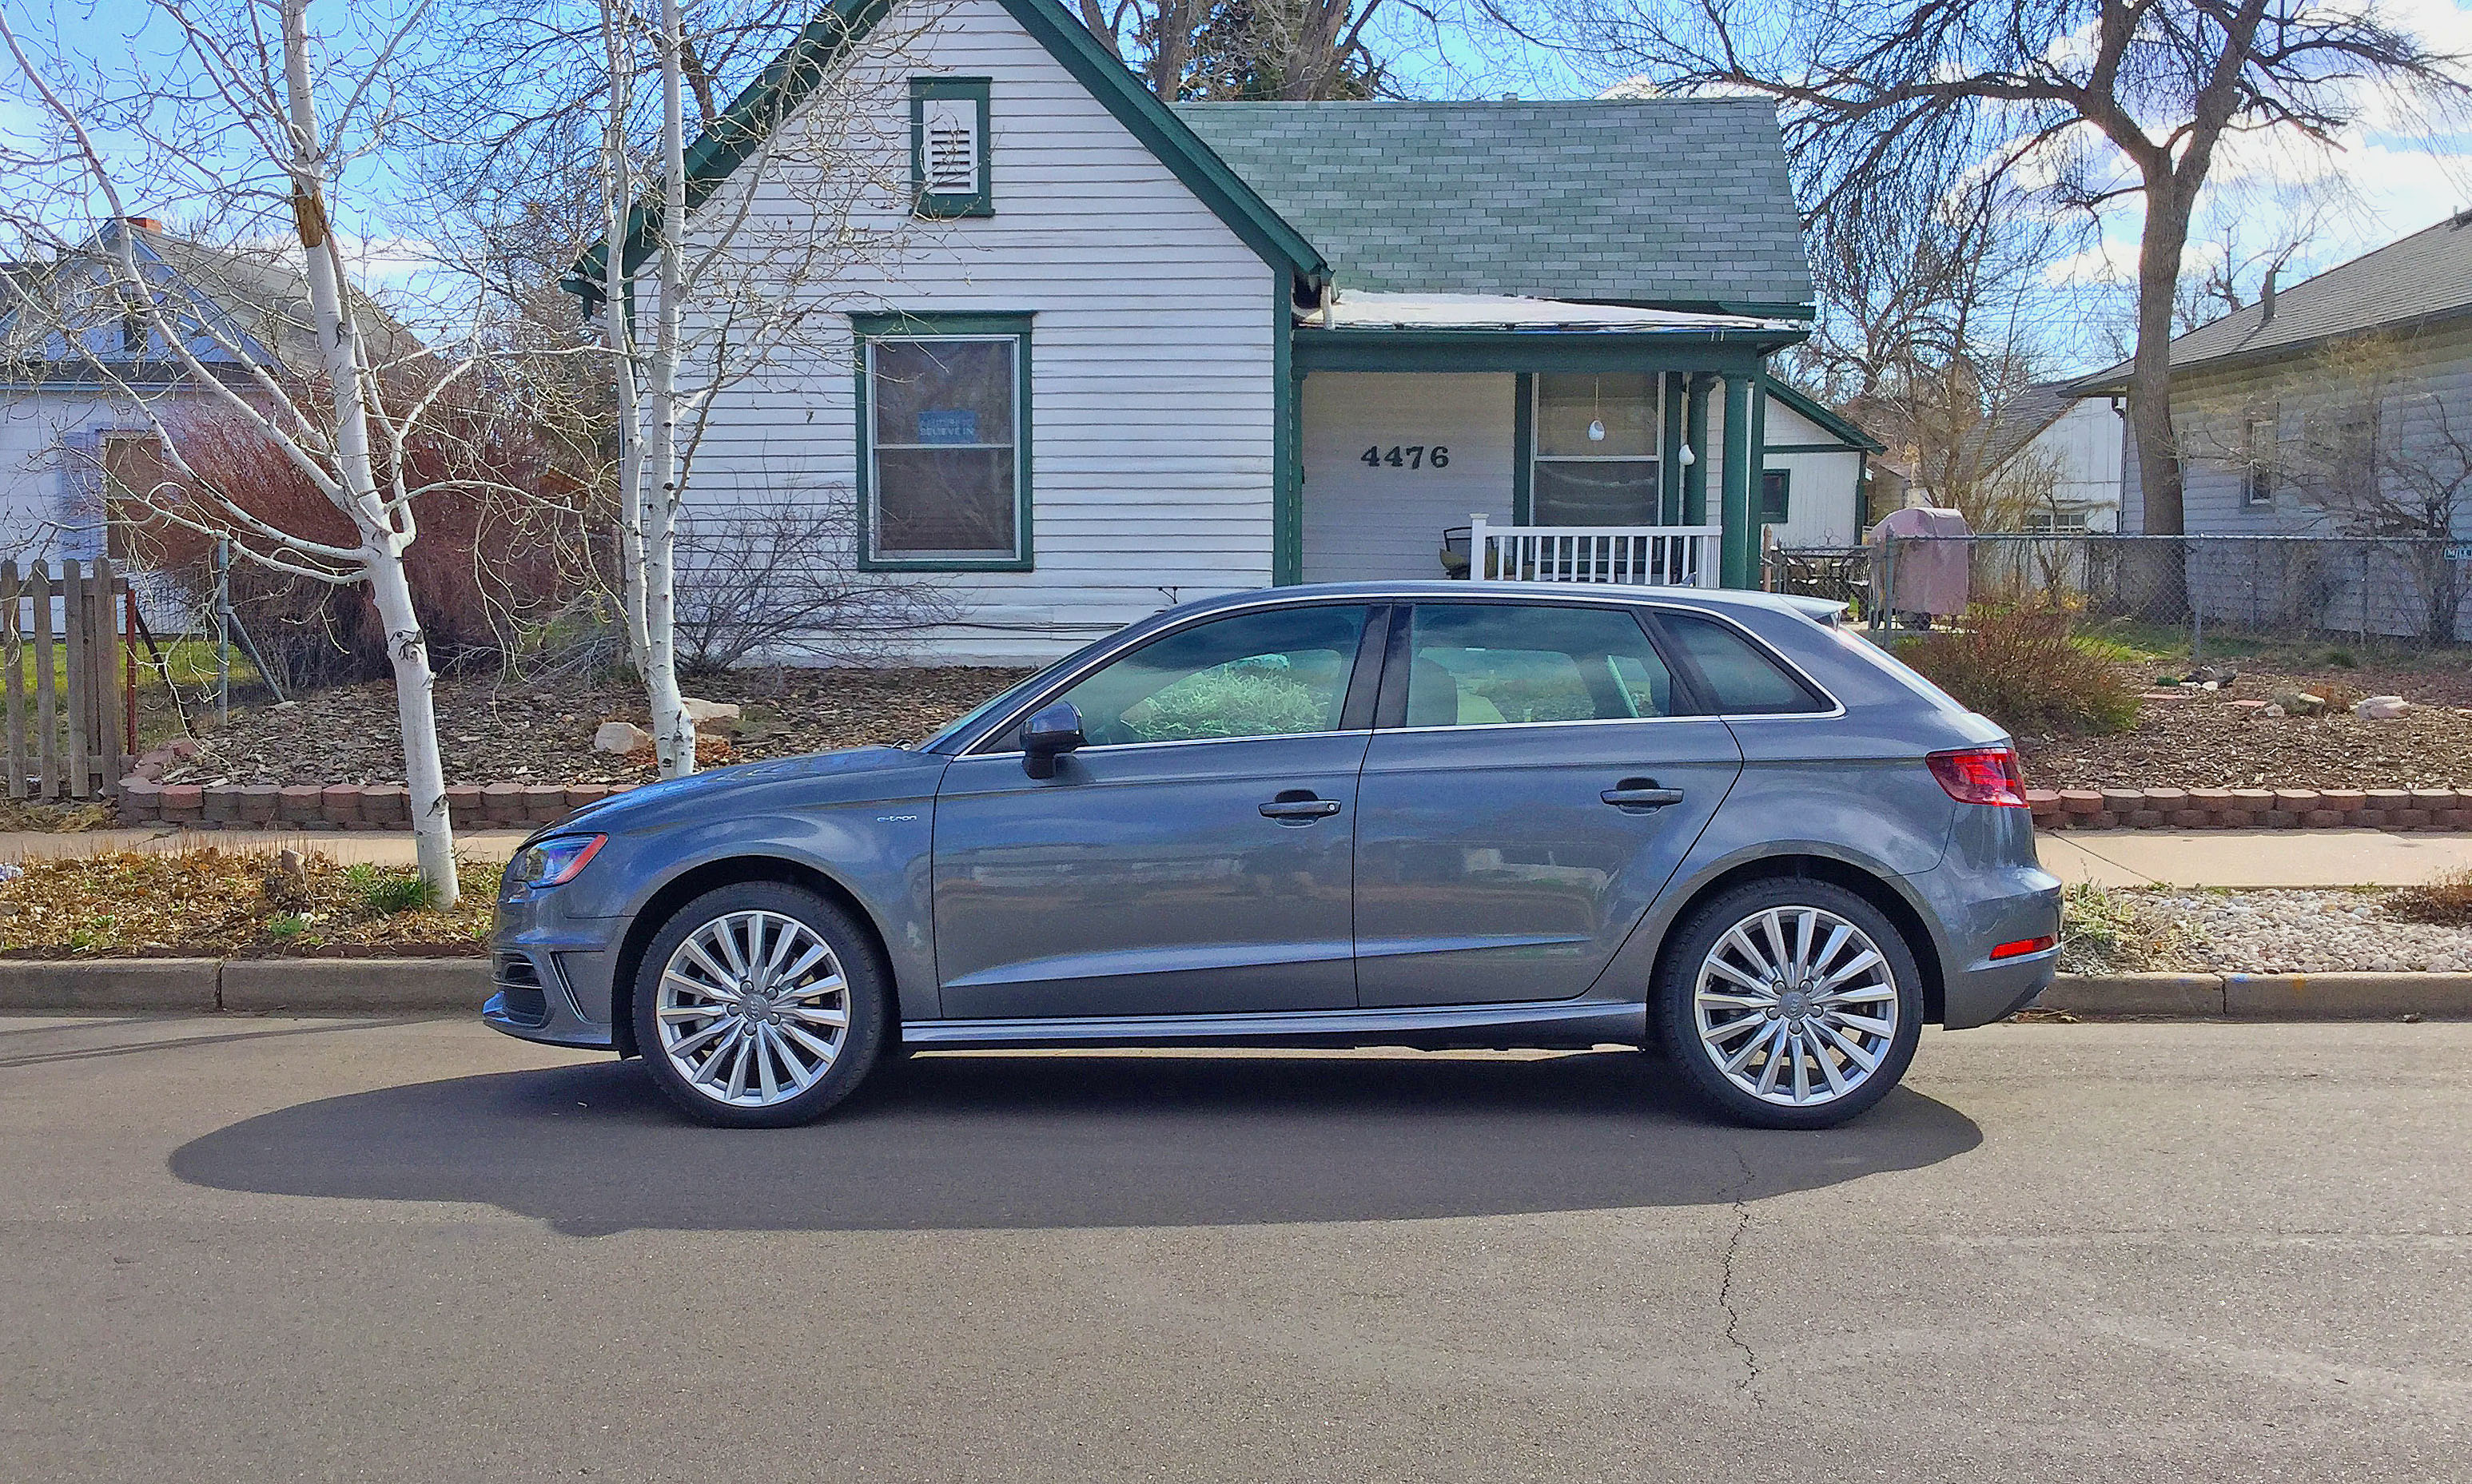 Audi A3 e-tron parked in front of a small cottage on Yates Street in Denver's Berkeley neighborhood.